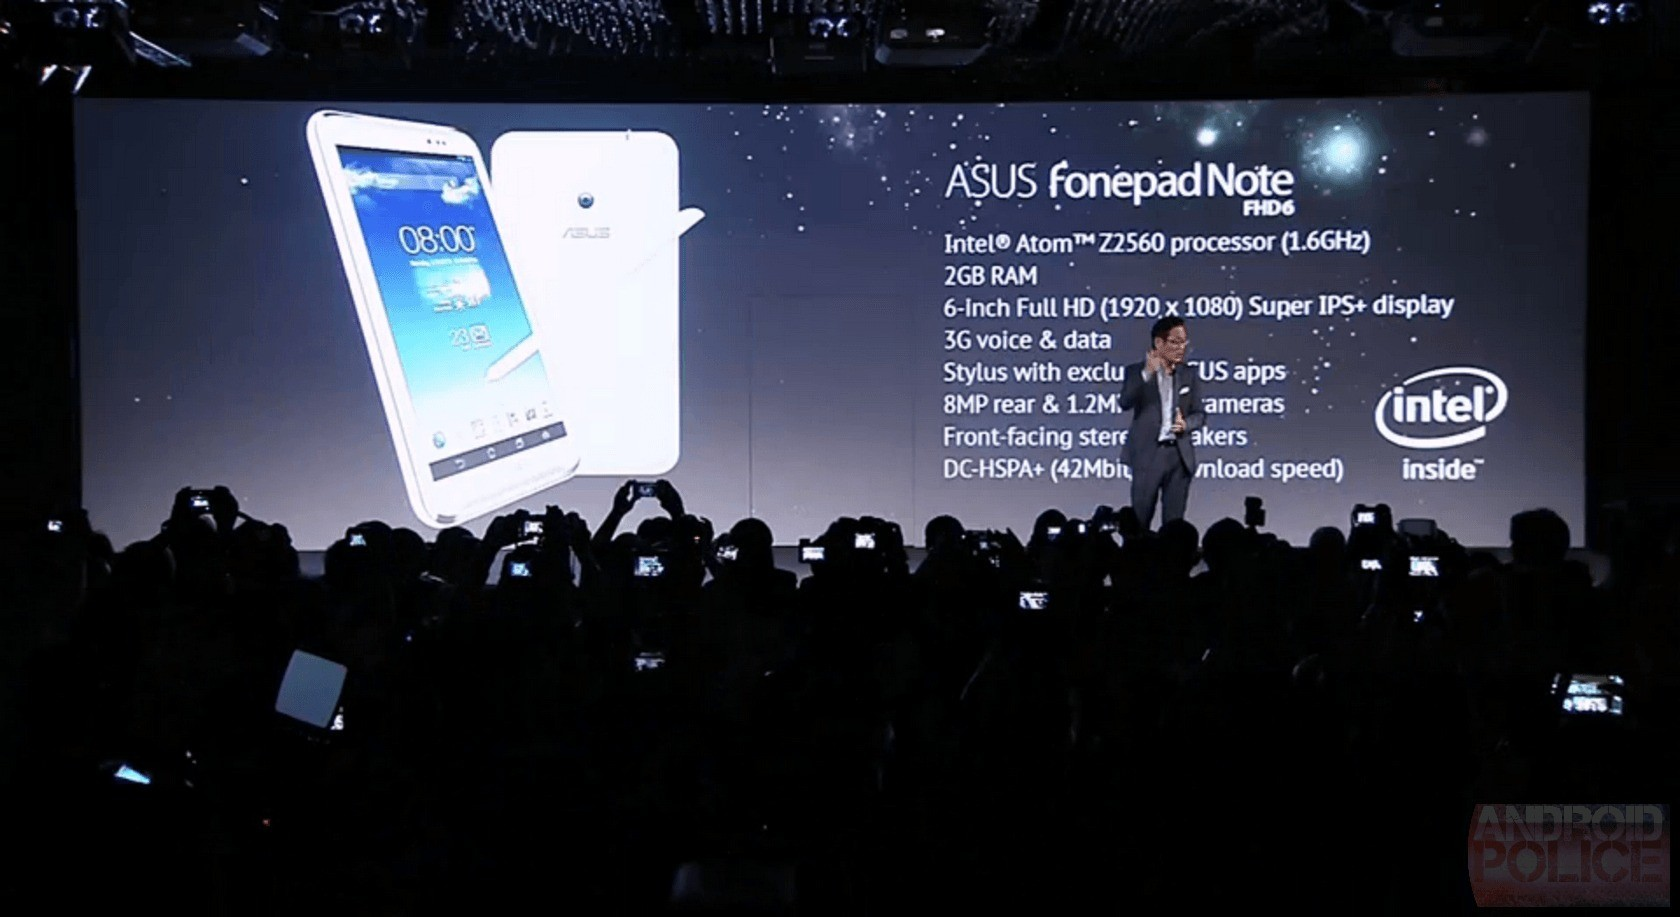 Asus Fonepad Note 6 | Arrivano i primo hands on!